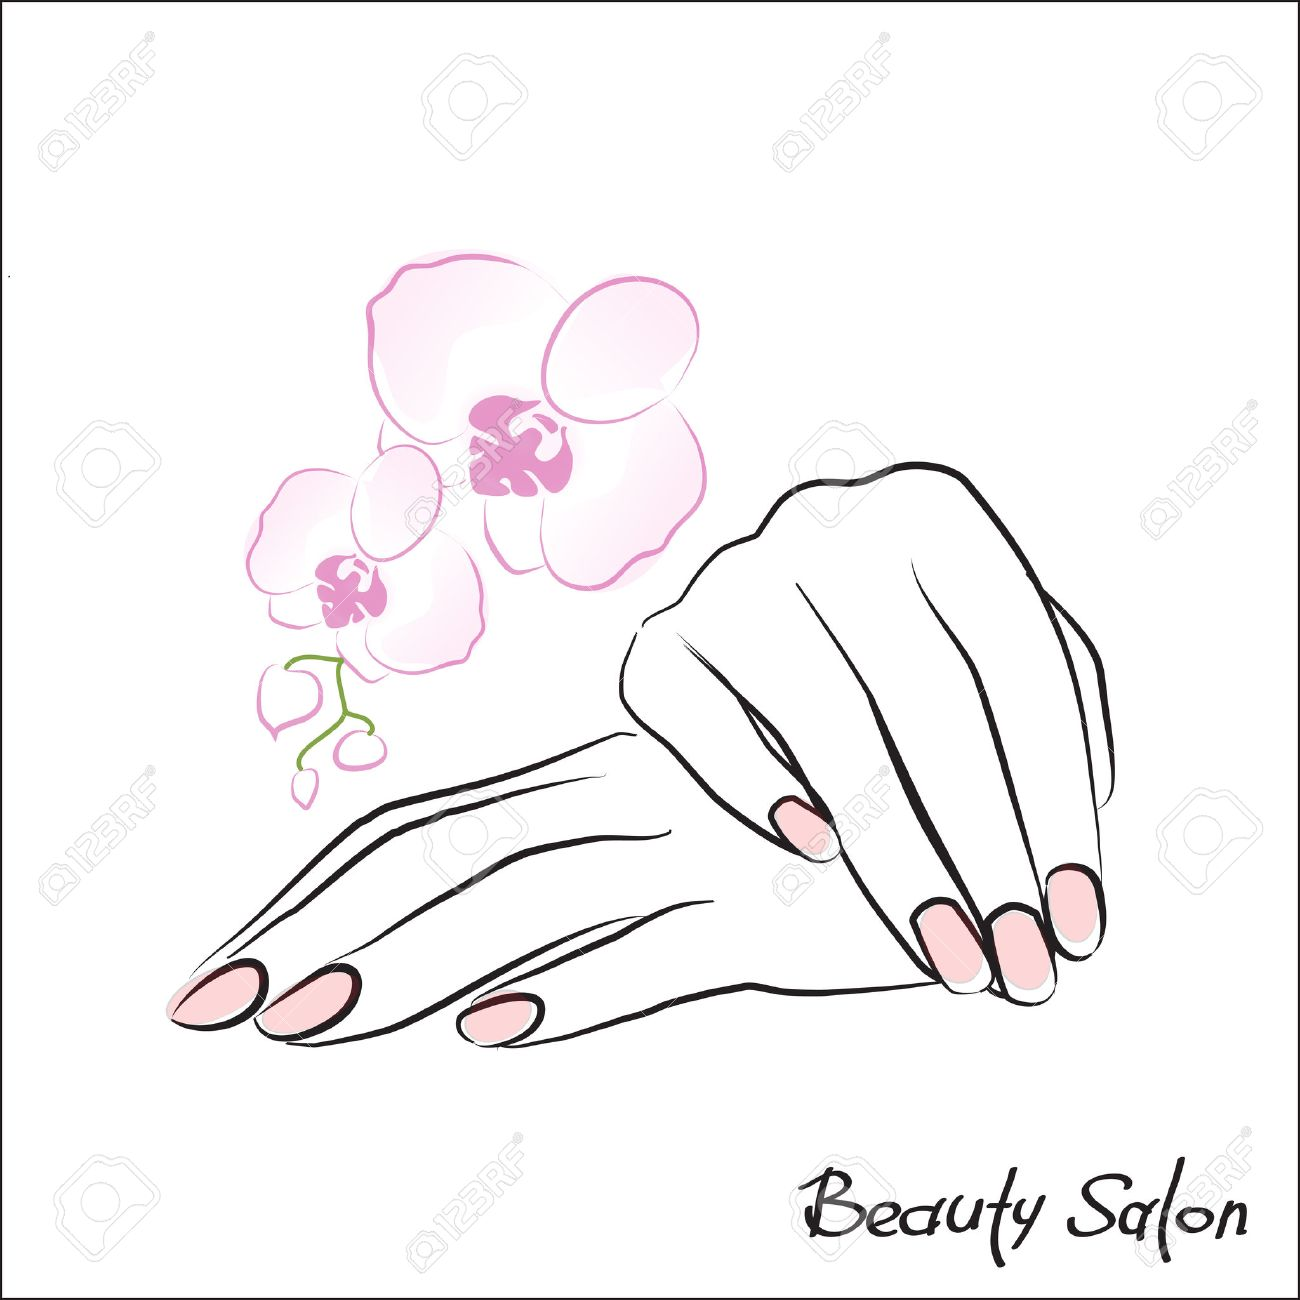 Female Hand With Painted Nails Pink Manicure Symbol Vector Illustration Stock